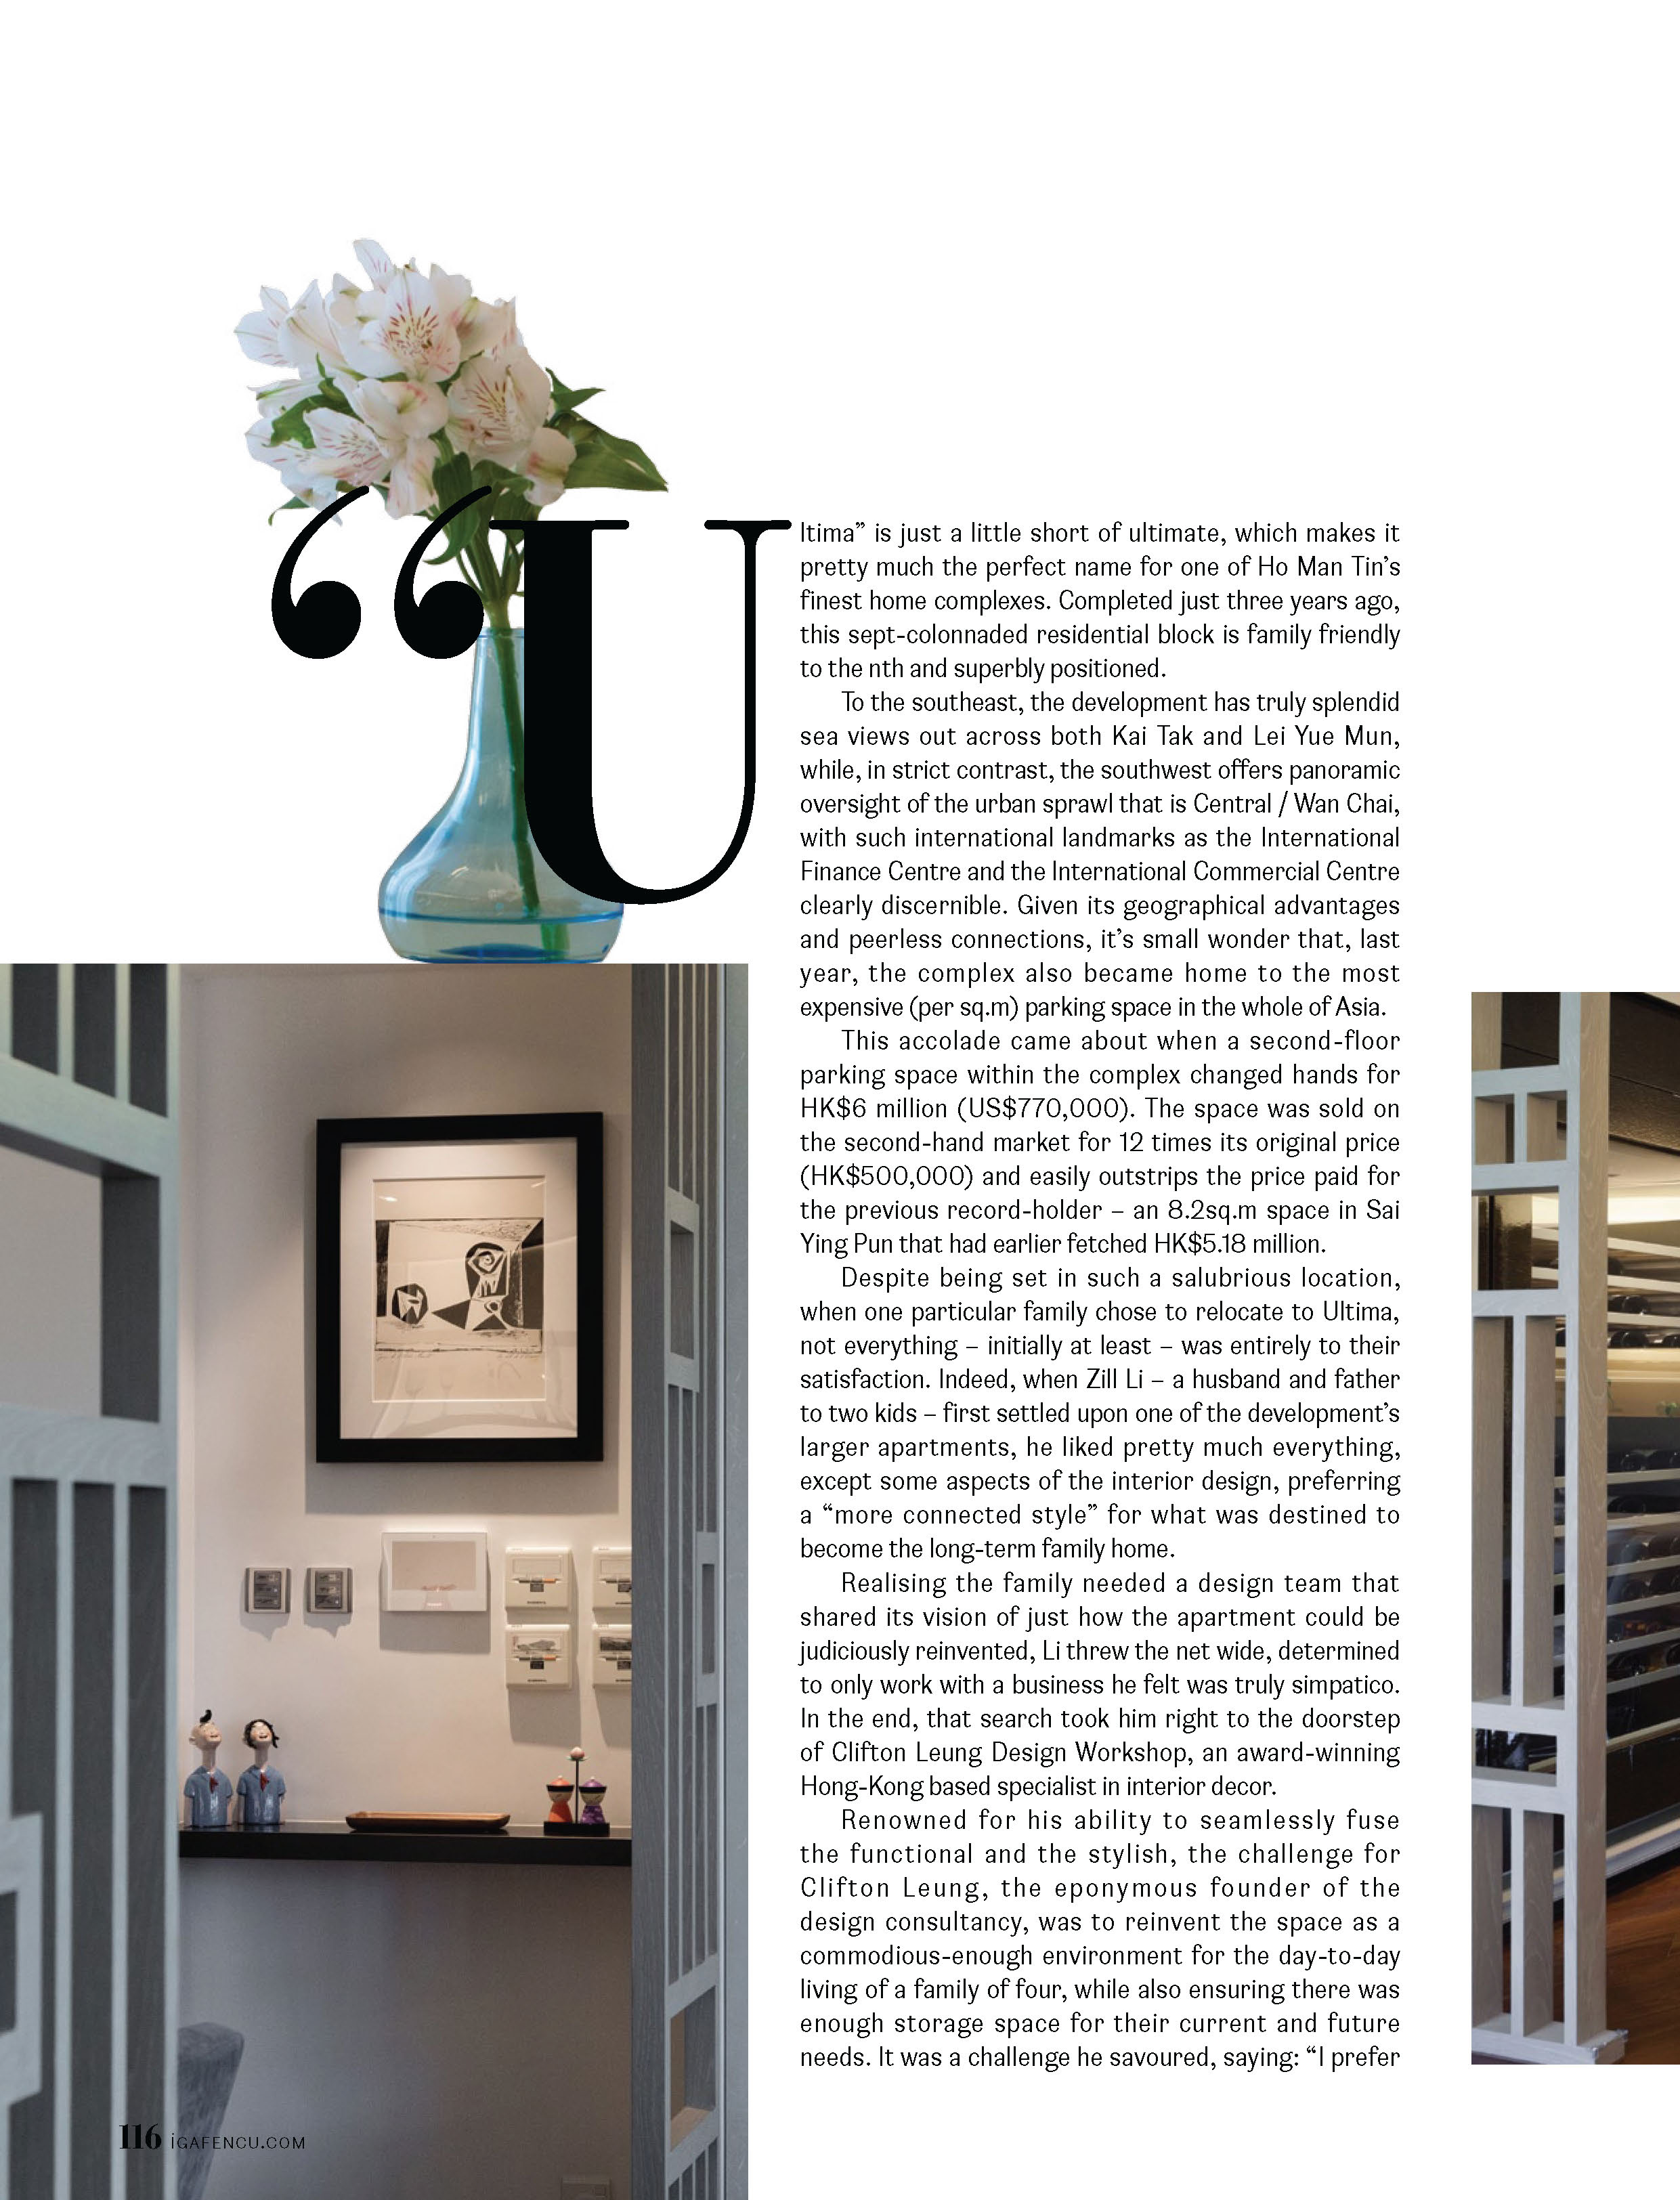 Hotel Style Home | Gafencu | March 2019 Issue - page3